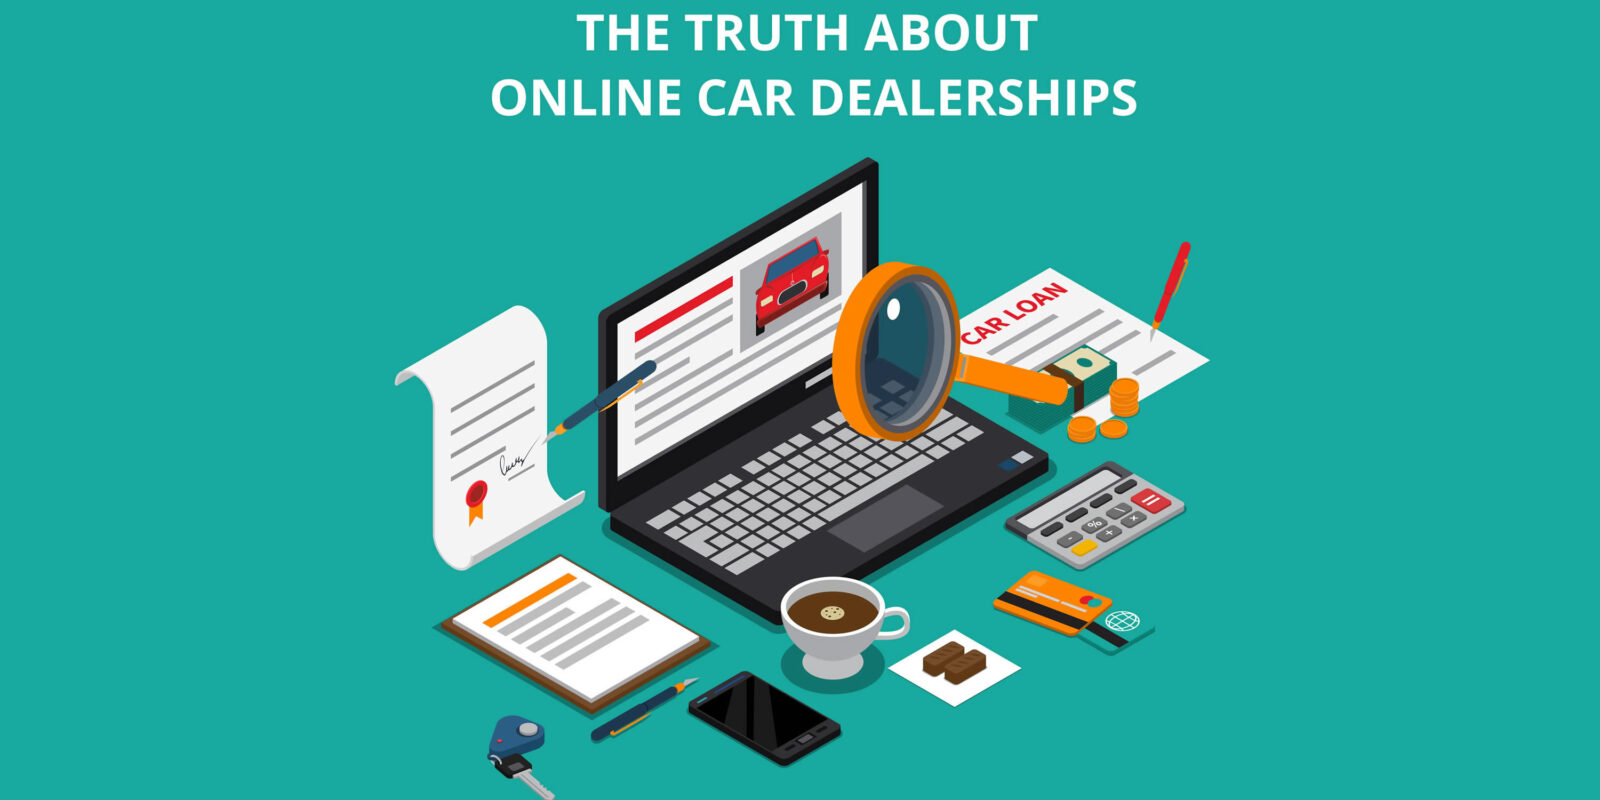 The Truth About Online Car Dealerships